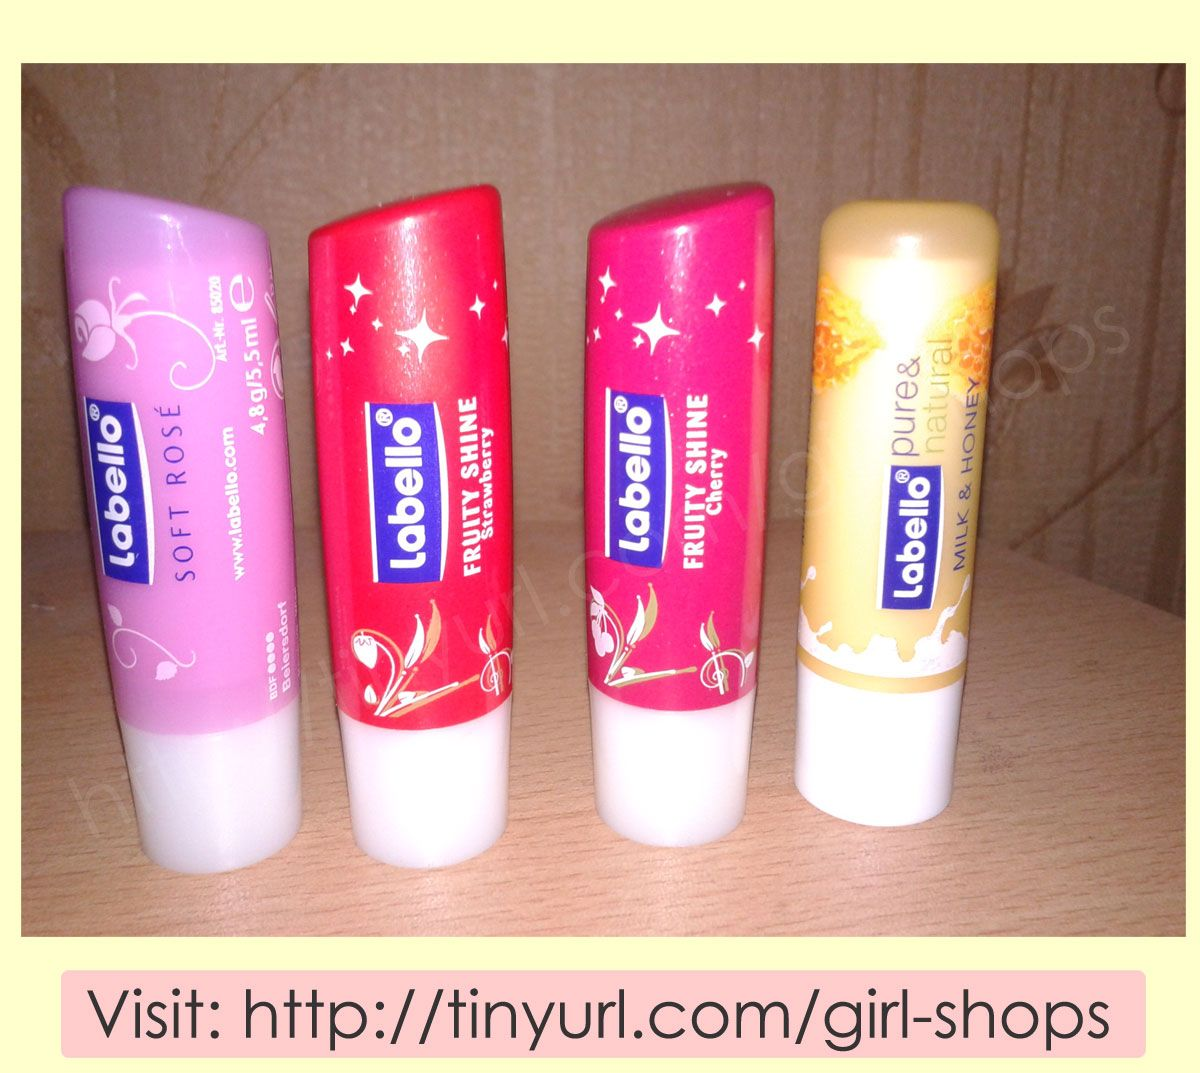 Labello The balm, Lip balm, Pure products